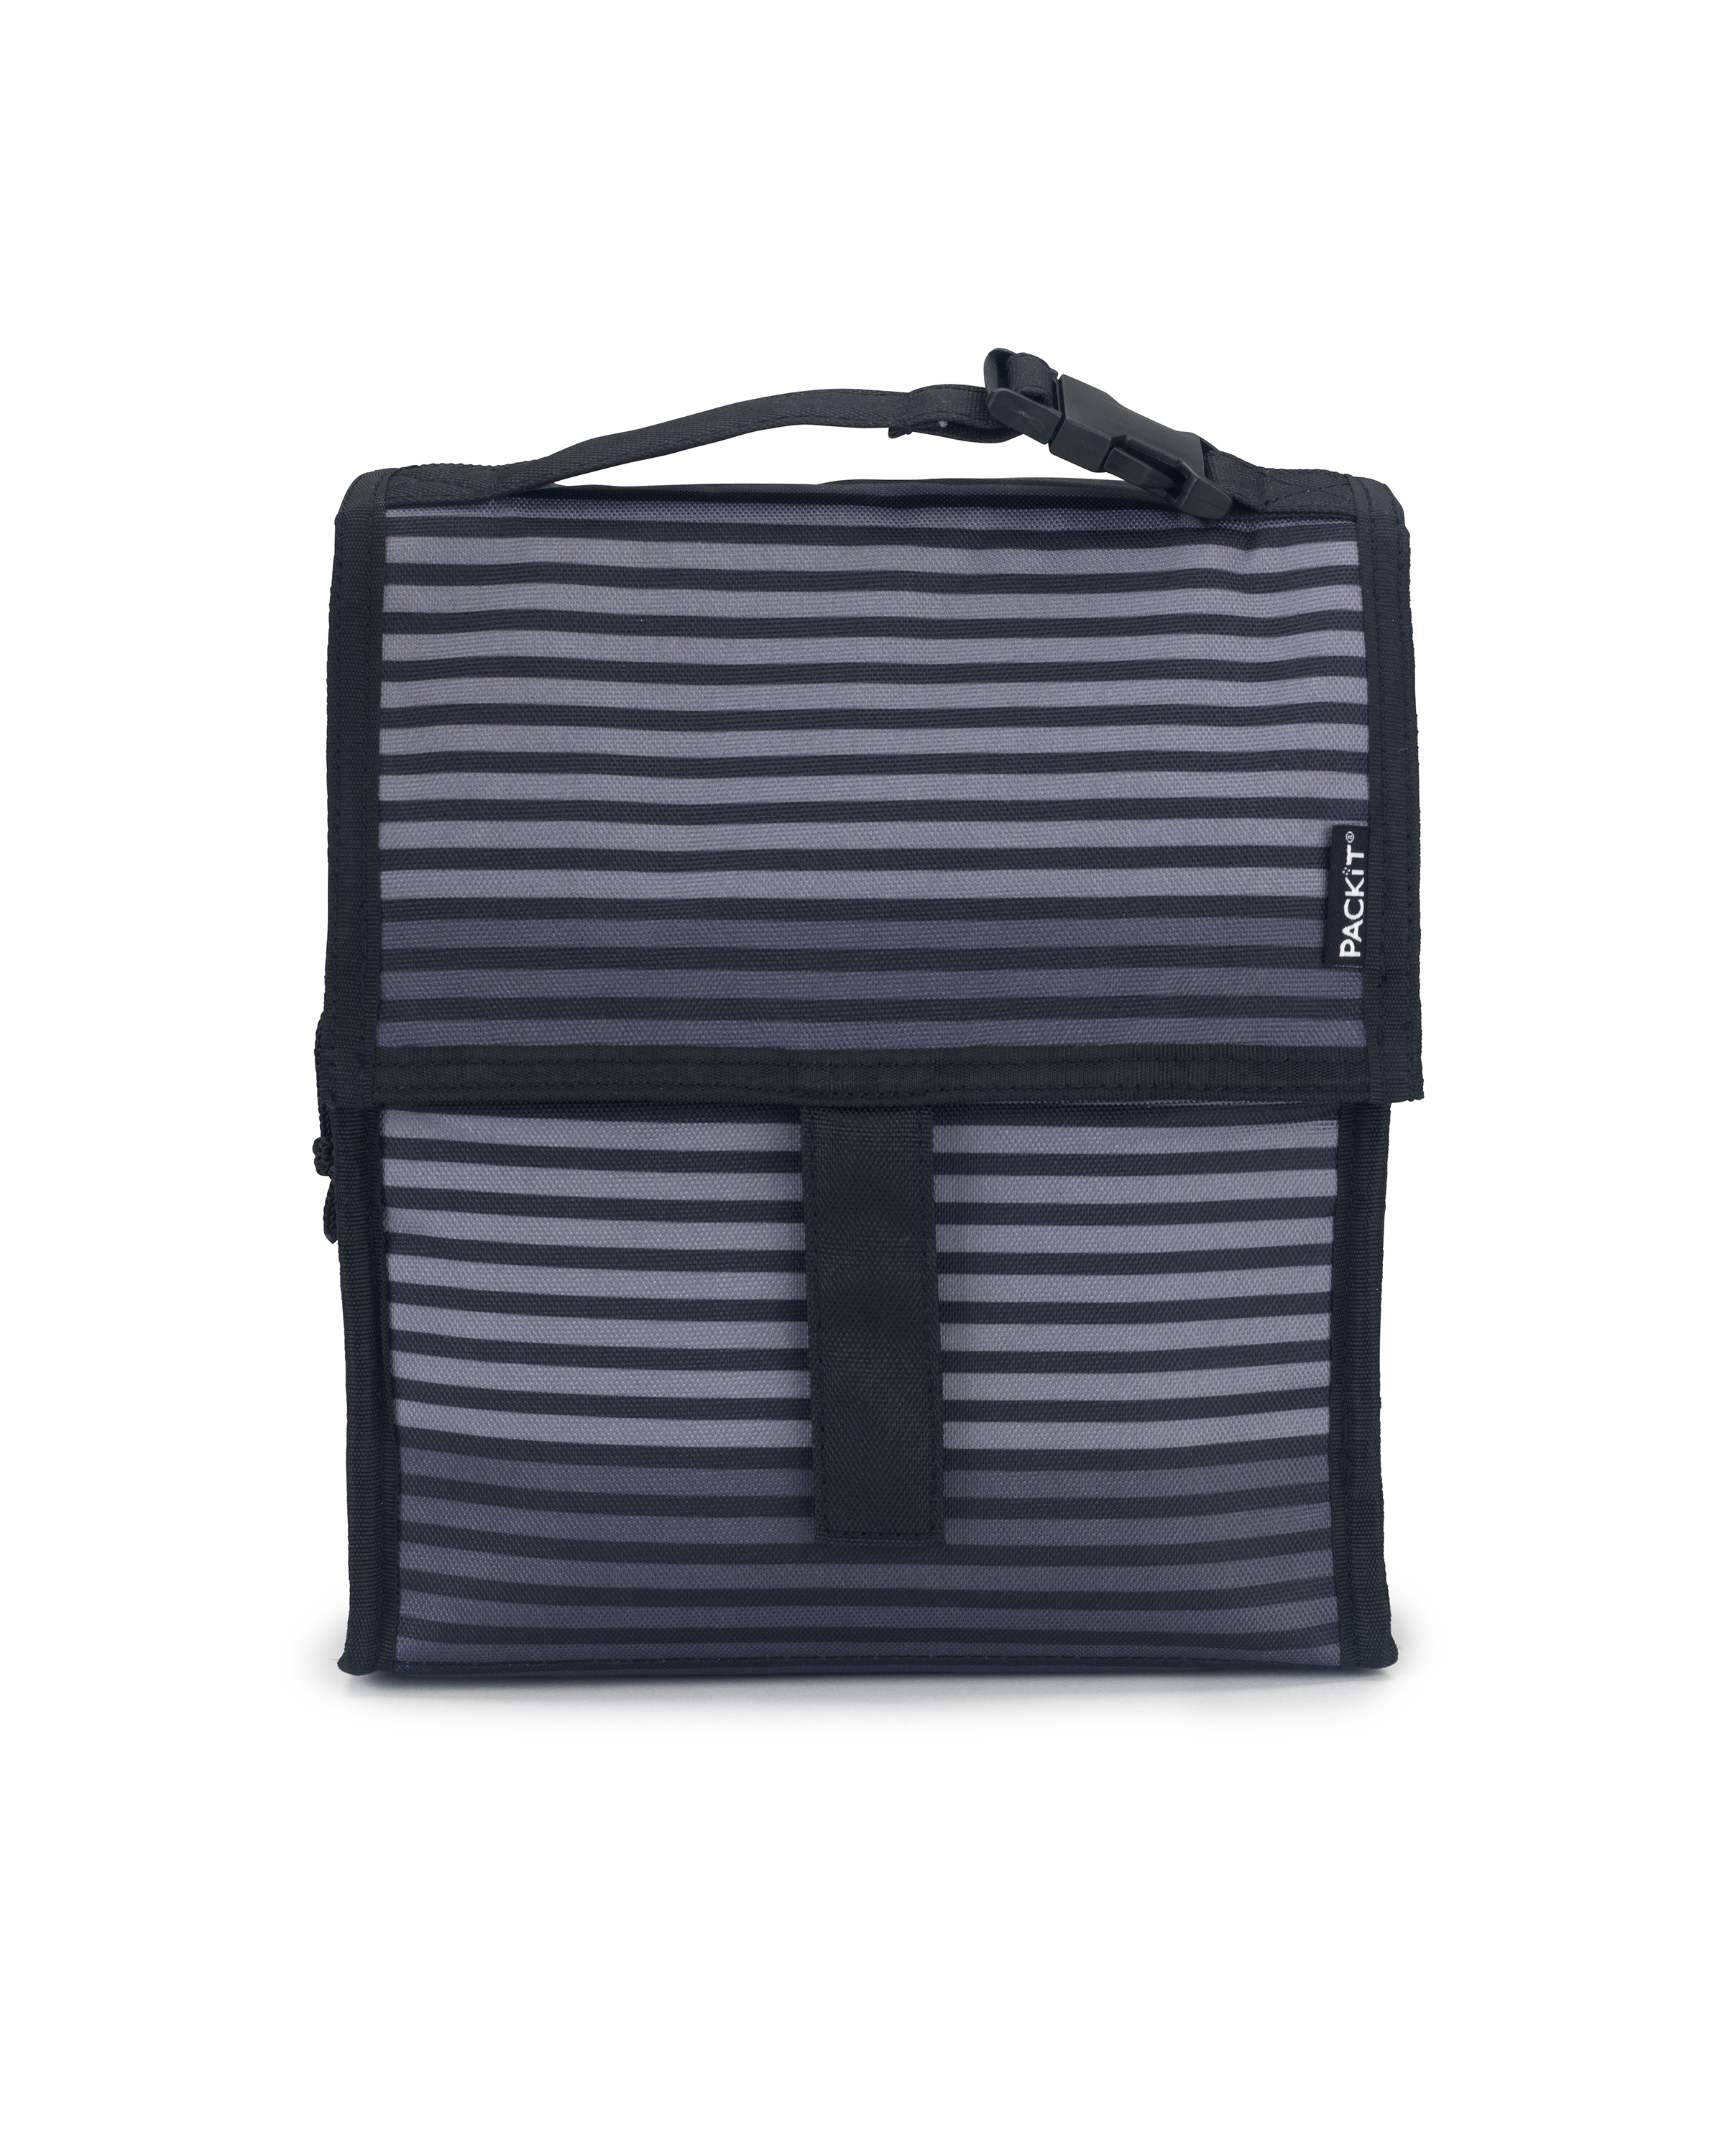 LUNCH BAG - GREY STRIPE - PACKIT